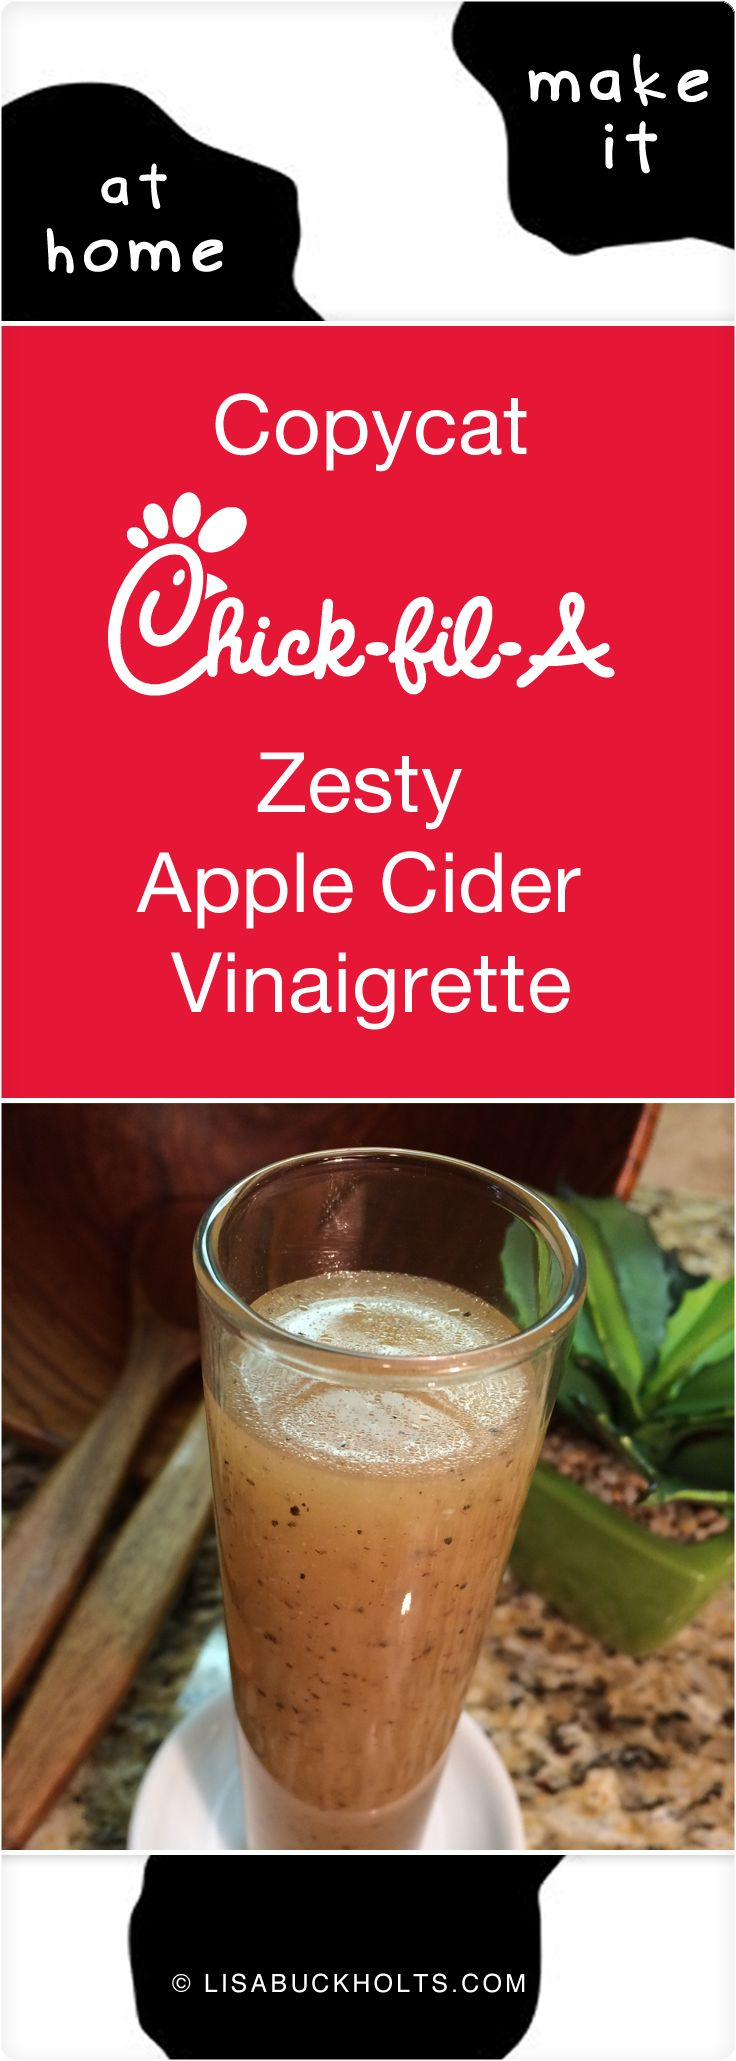 Copycat Chick-fil-A Zesty Apple Cider Vinaigrette. This dressing is amazing…the zing of the apple cider vinegar, hint of sweet pineapple and tangy lime juice and warm heat of the freshly-cracked black pepper is a sure winner!